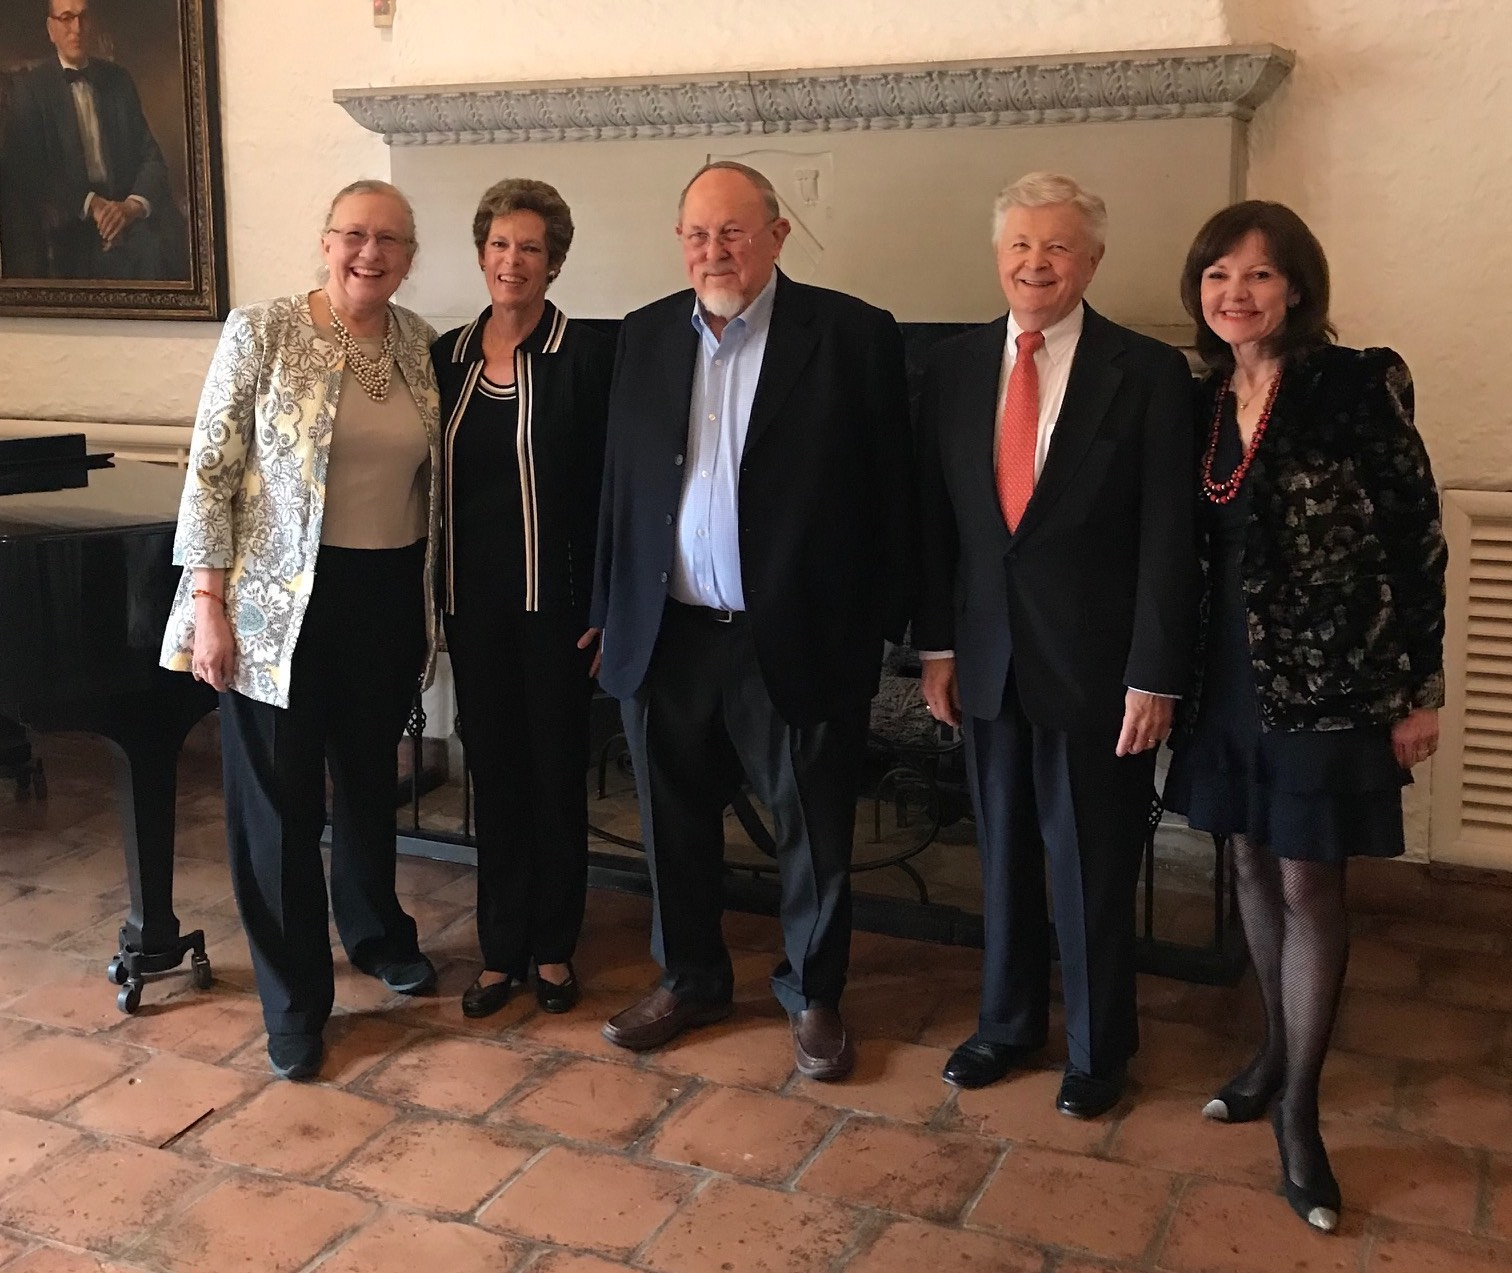 Doyle Arnold '70 with Dr. William Sharpe, who delivered a RISE Lecture in March 2018, and friends from business school. (L-R: Polly Shouse, Rhonda Brooks '74, Dr. William Sharpe, Doyle Arnold '70, Mary Ellen Zellerbach)